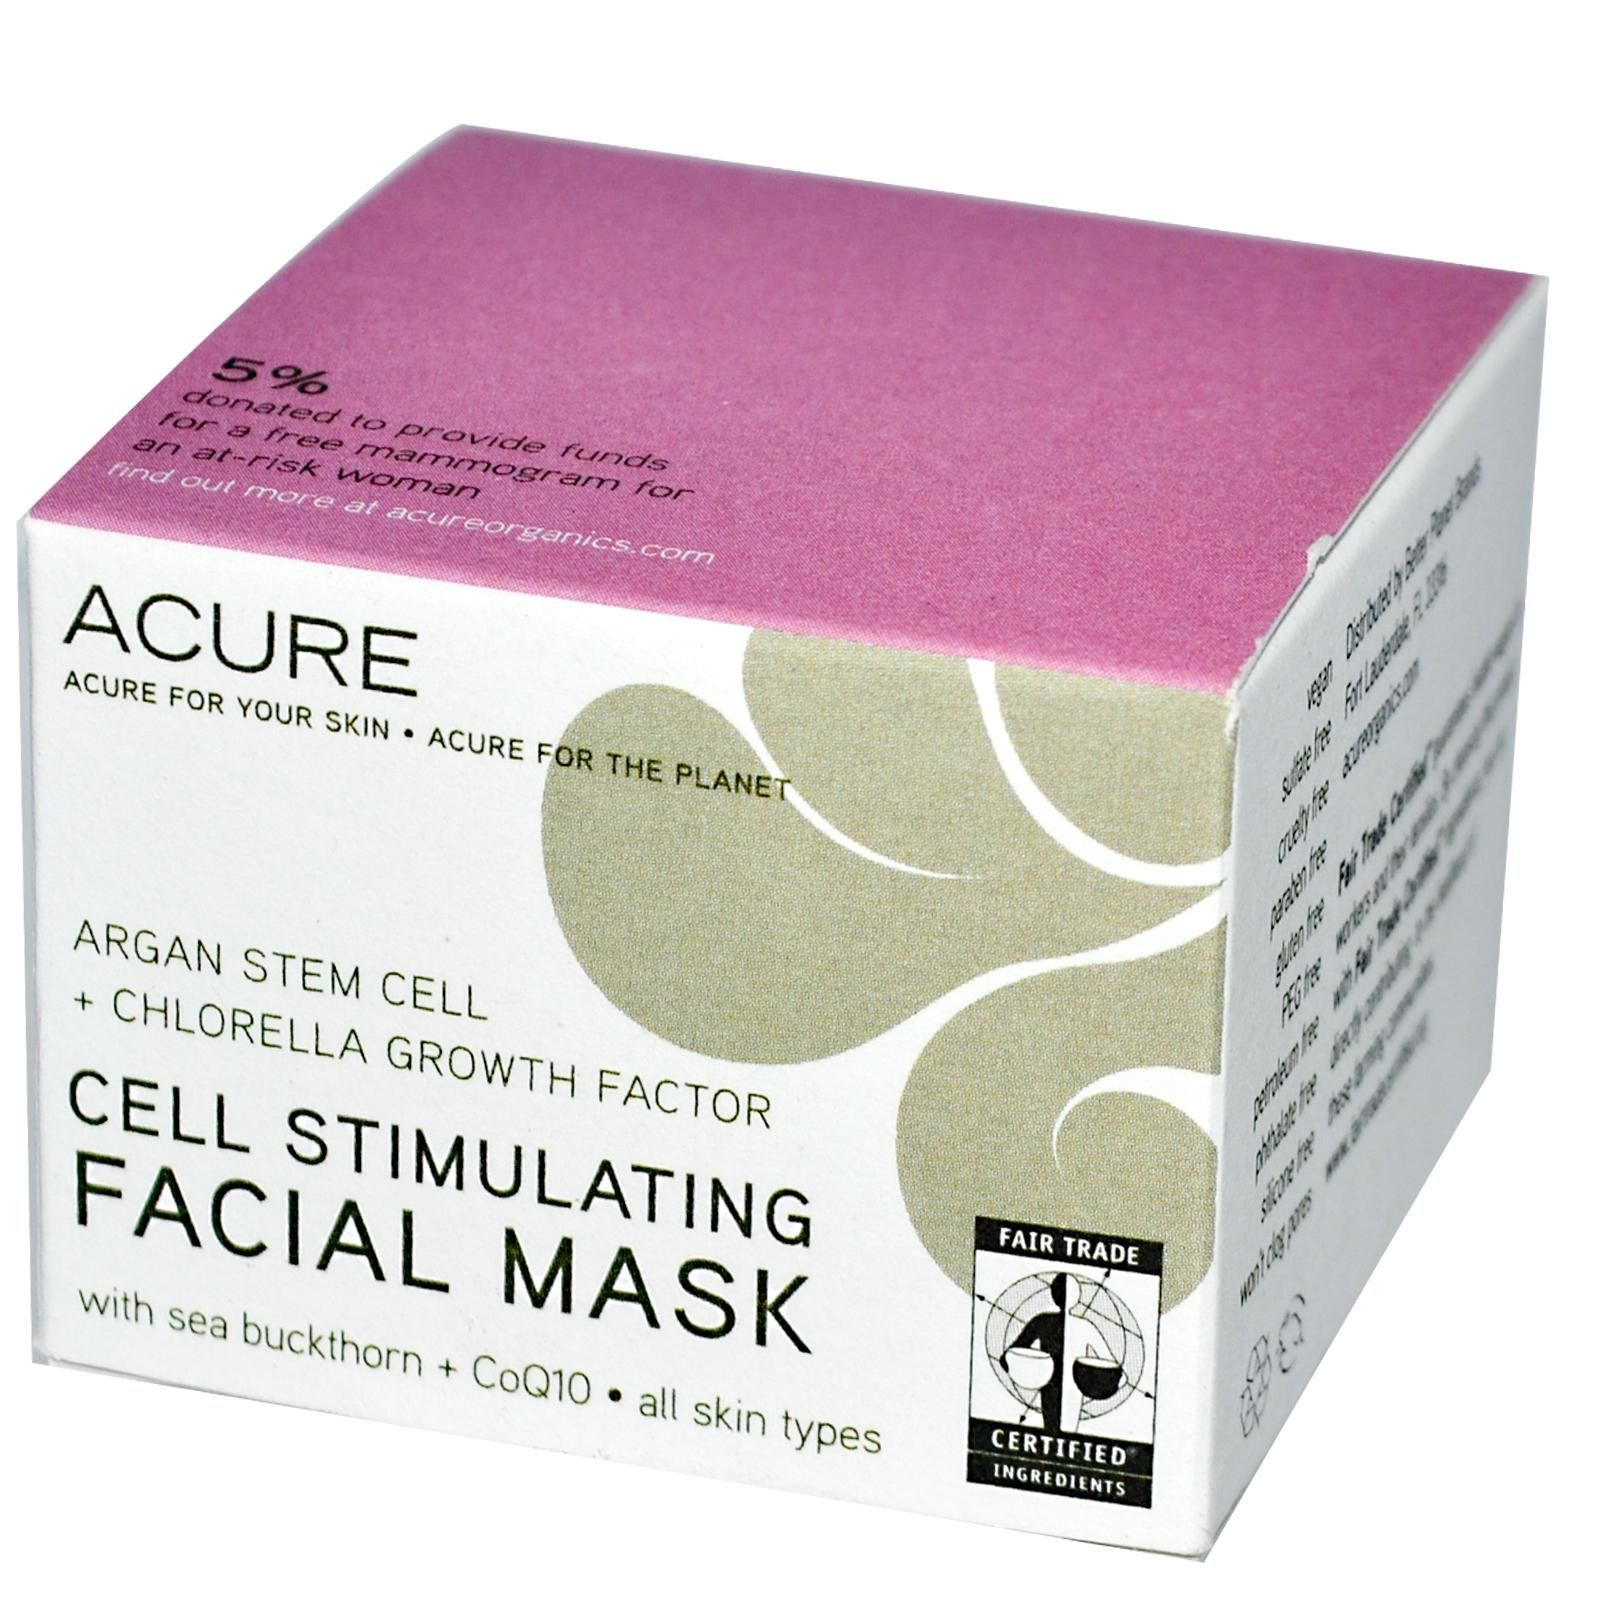 Pin On My Fav IHerb.com Products